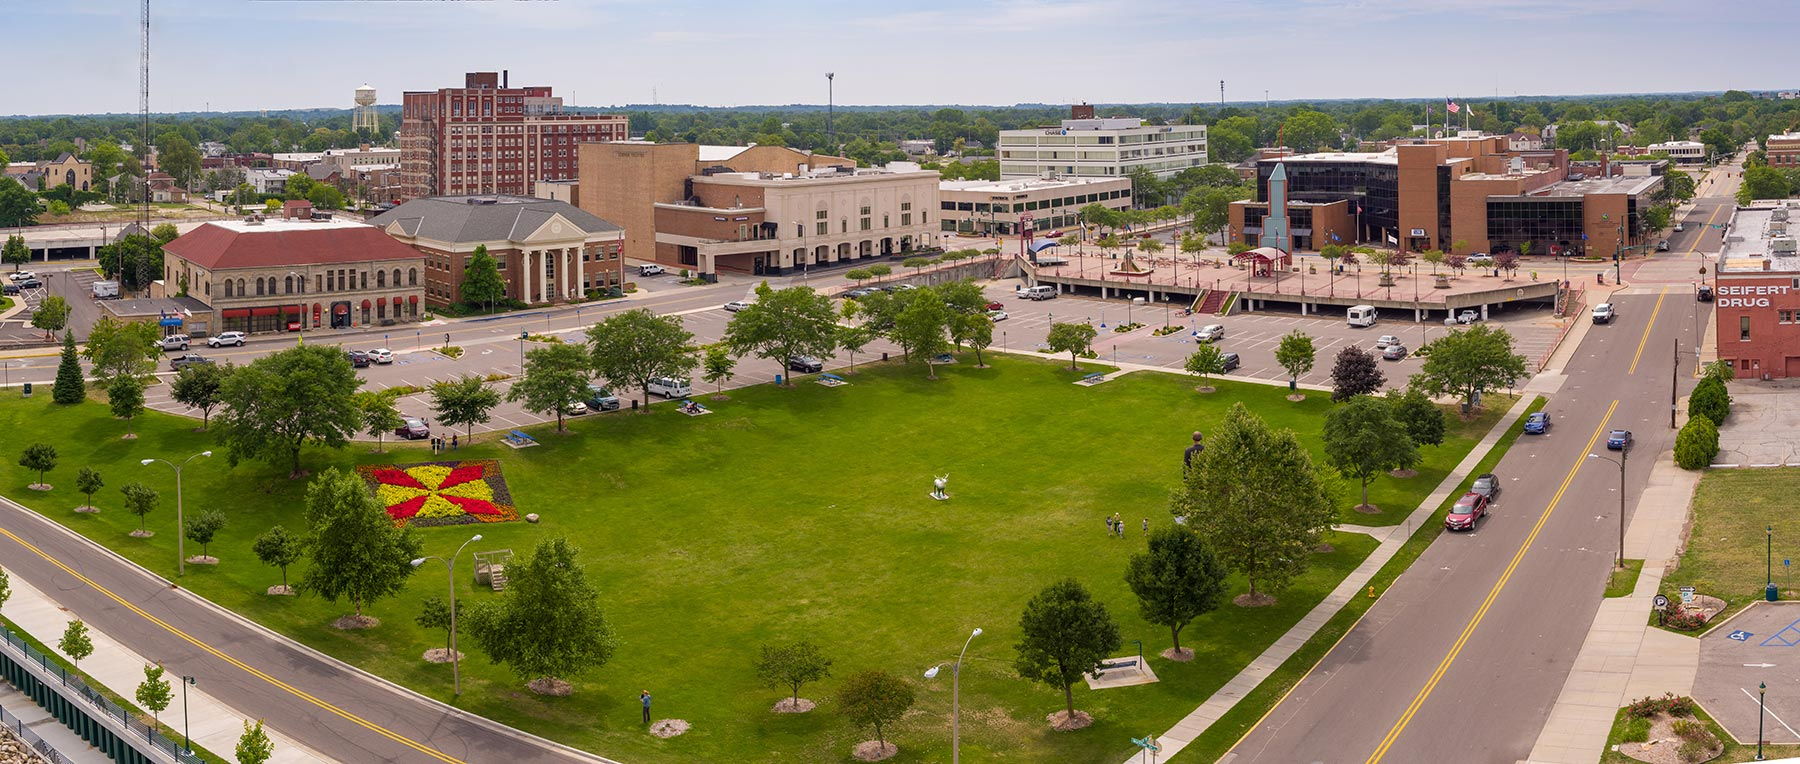 Major changes in the works for Elkhart's Civic Plaza and Central Park